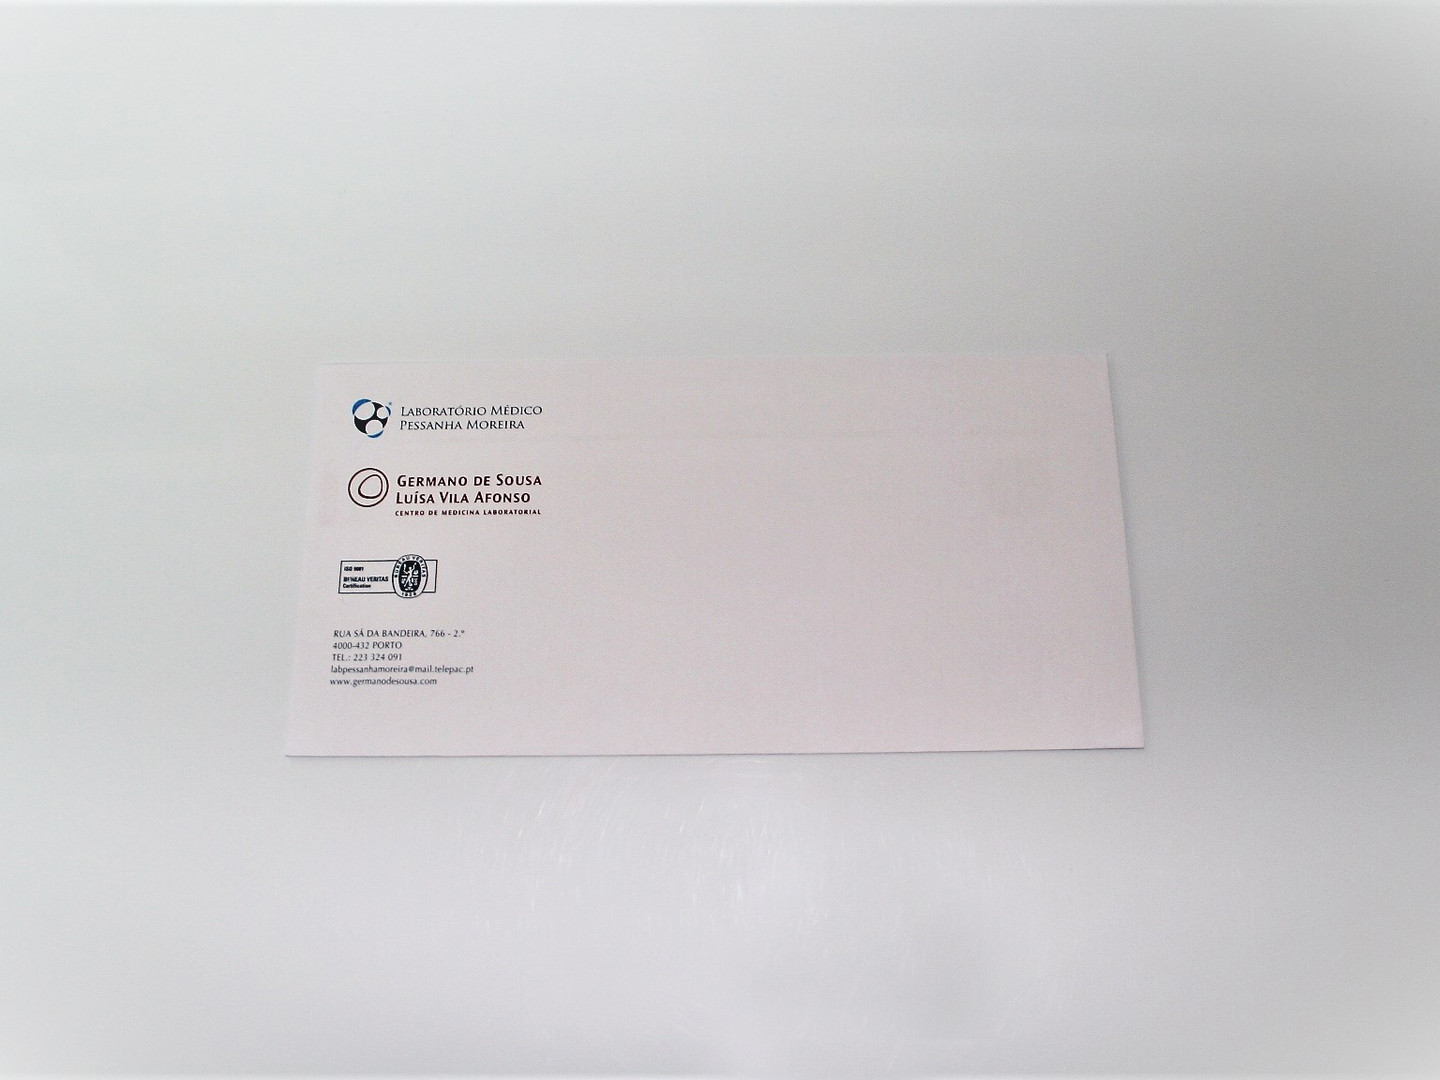 Envelope GERMANO DE SOUSA.JPG